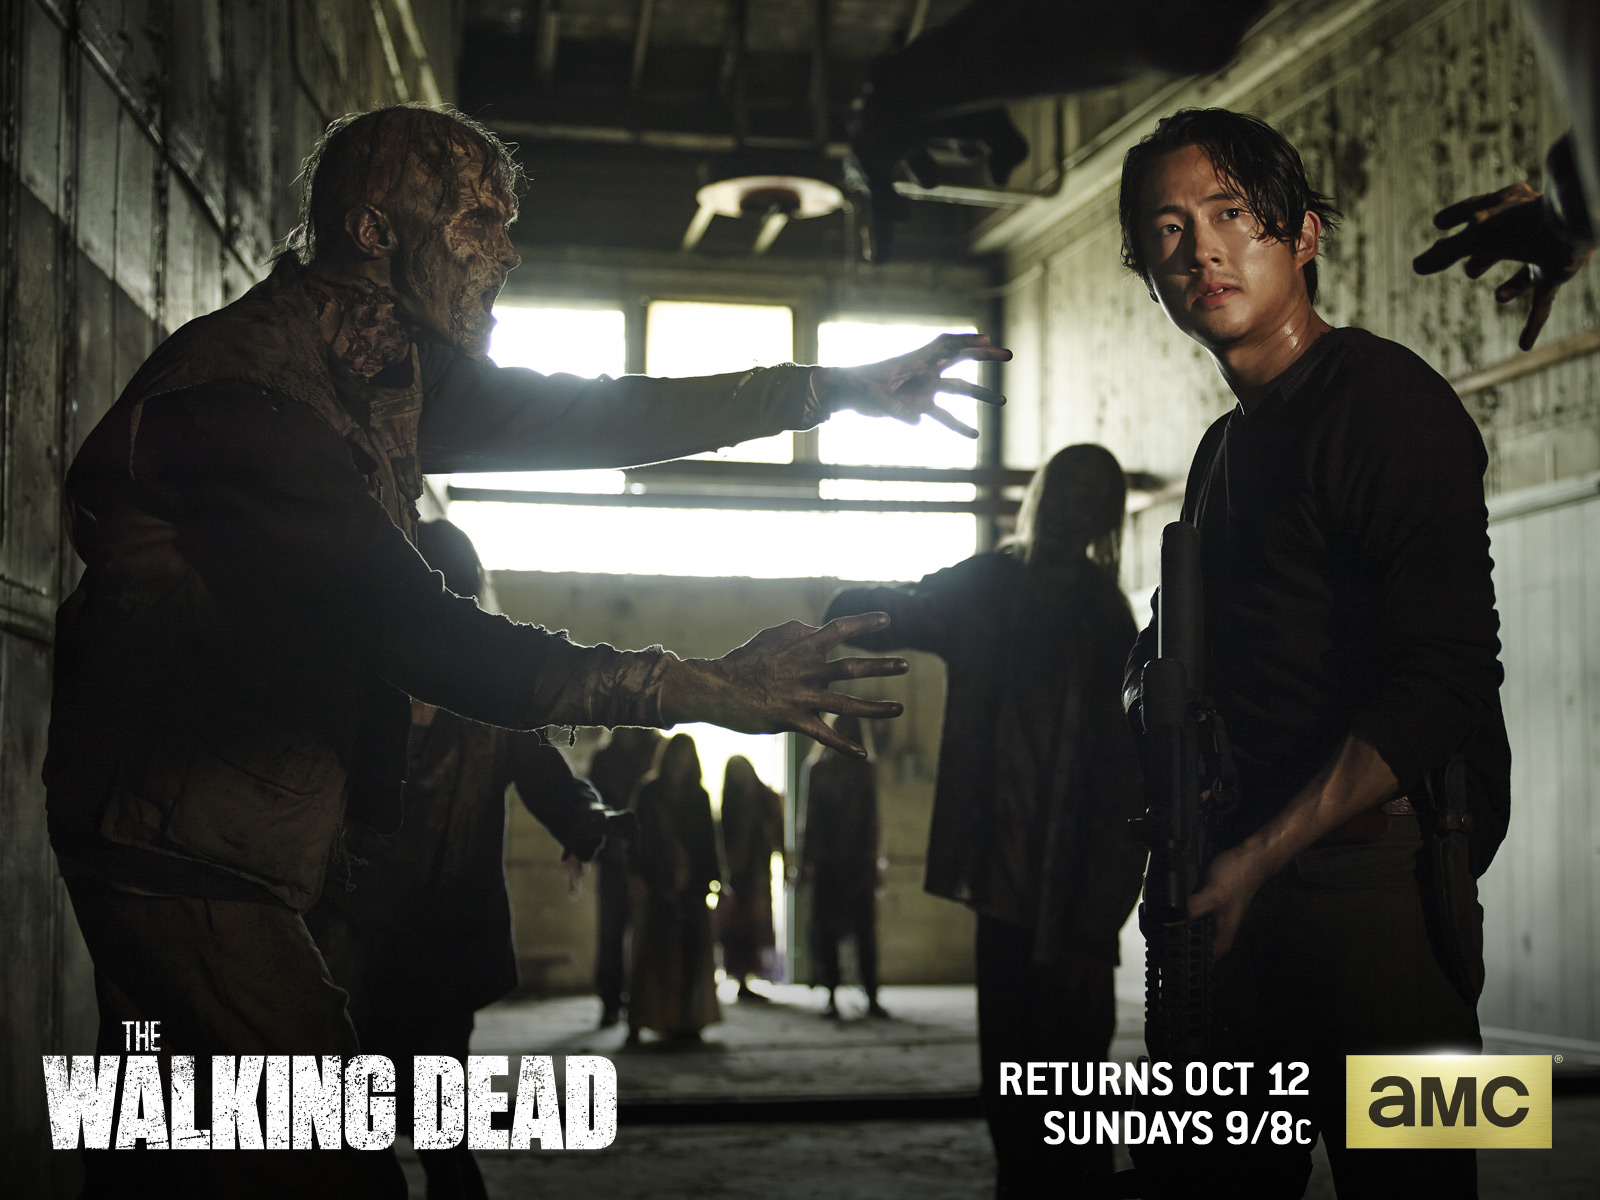 Season 5 wallpaper and background image 1600x1200 id543472 tv show the walking dead wallpaper voltagebd Choice Image